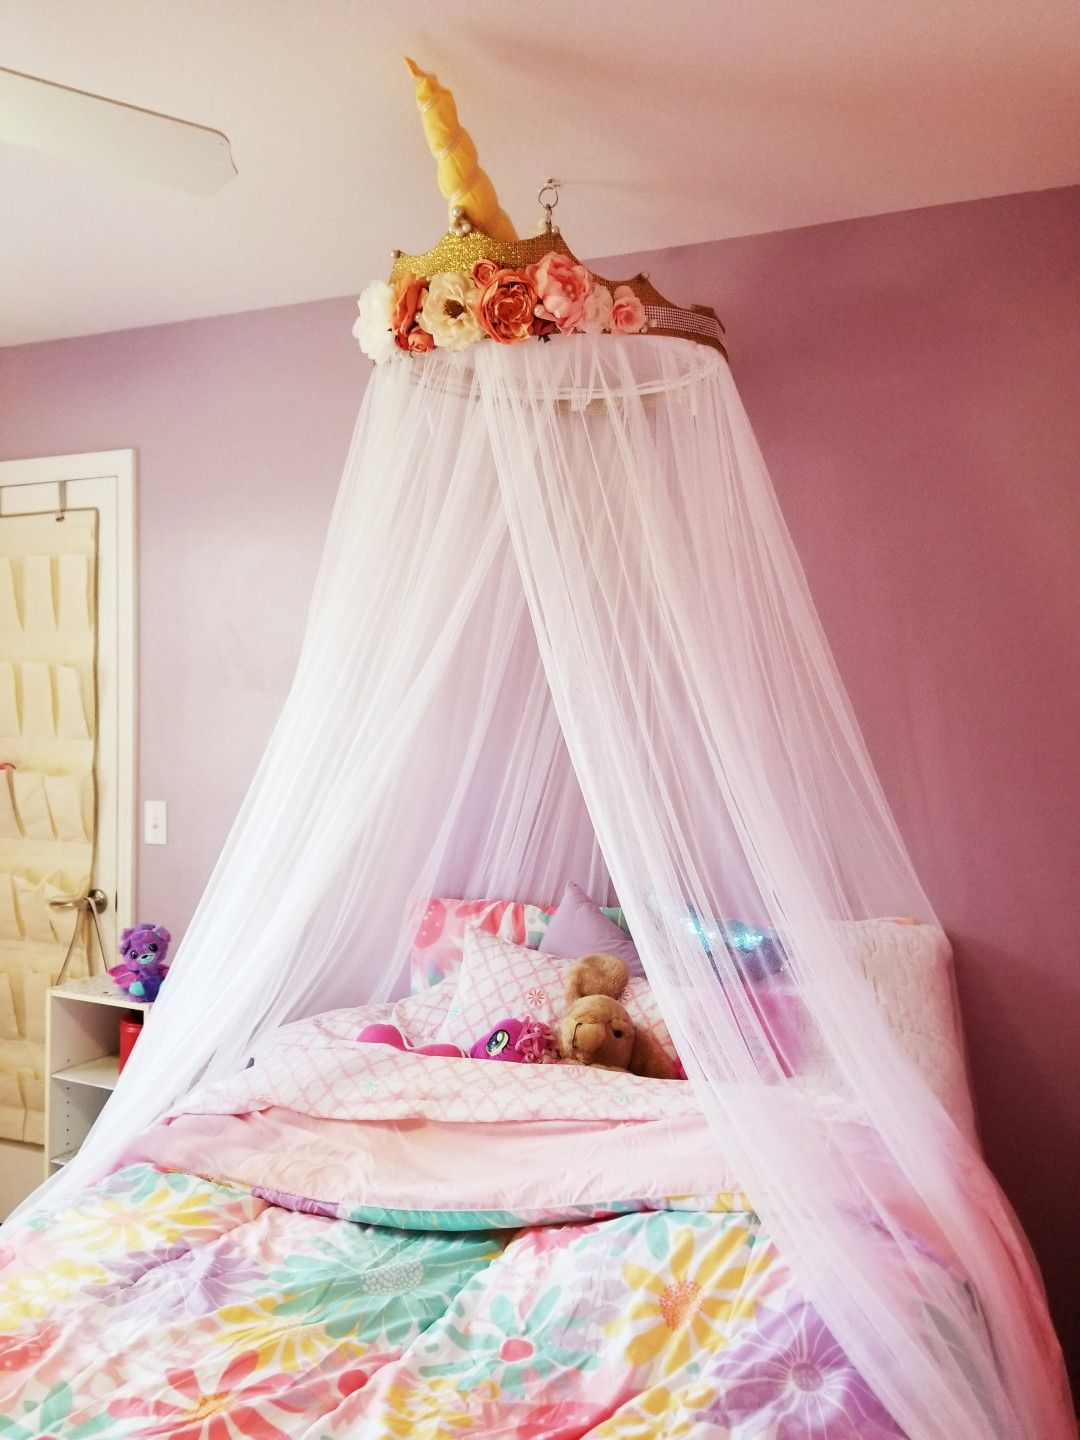 Bed Canopy From Bed Bath And Beyond Unicorn Crown Crafted As Addition For Little Girl 39 S Room